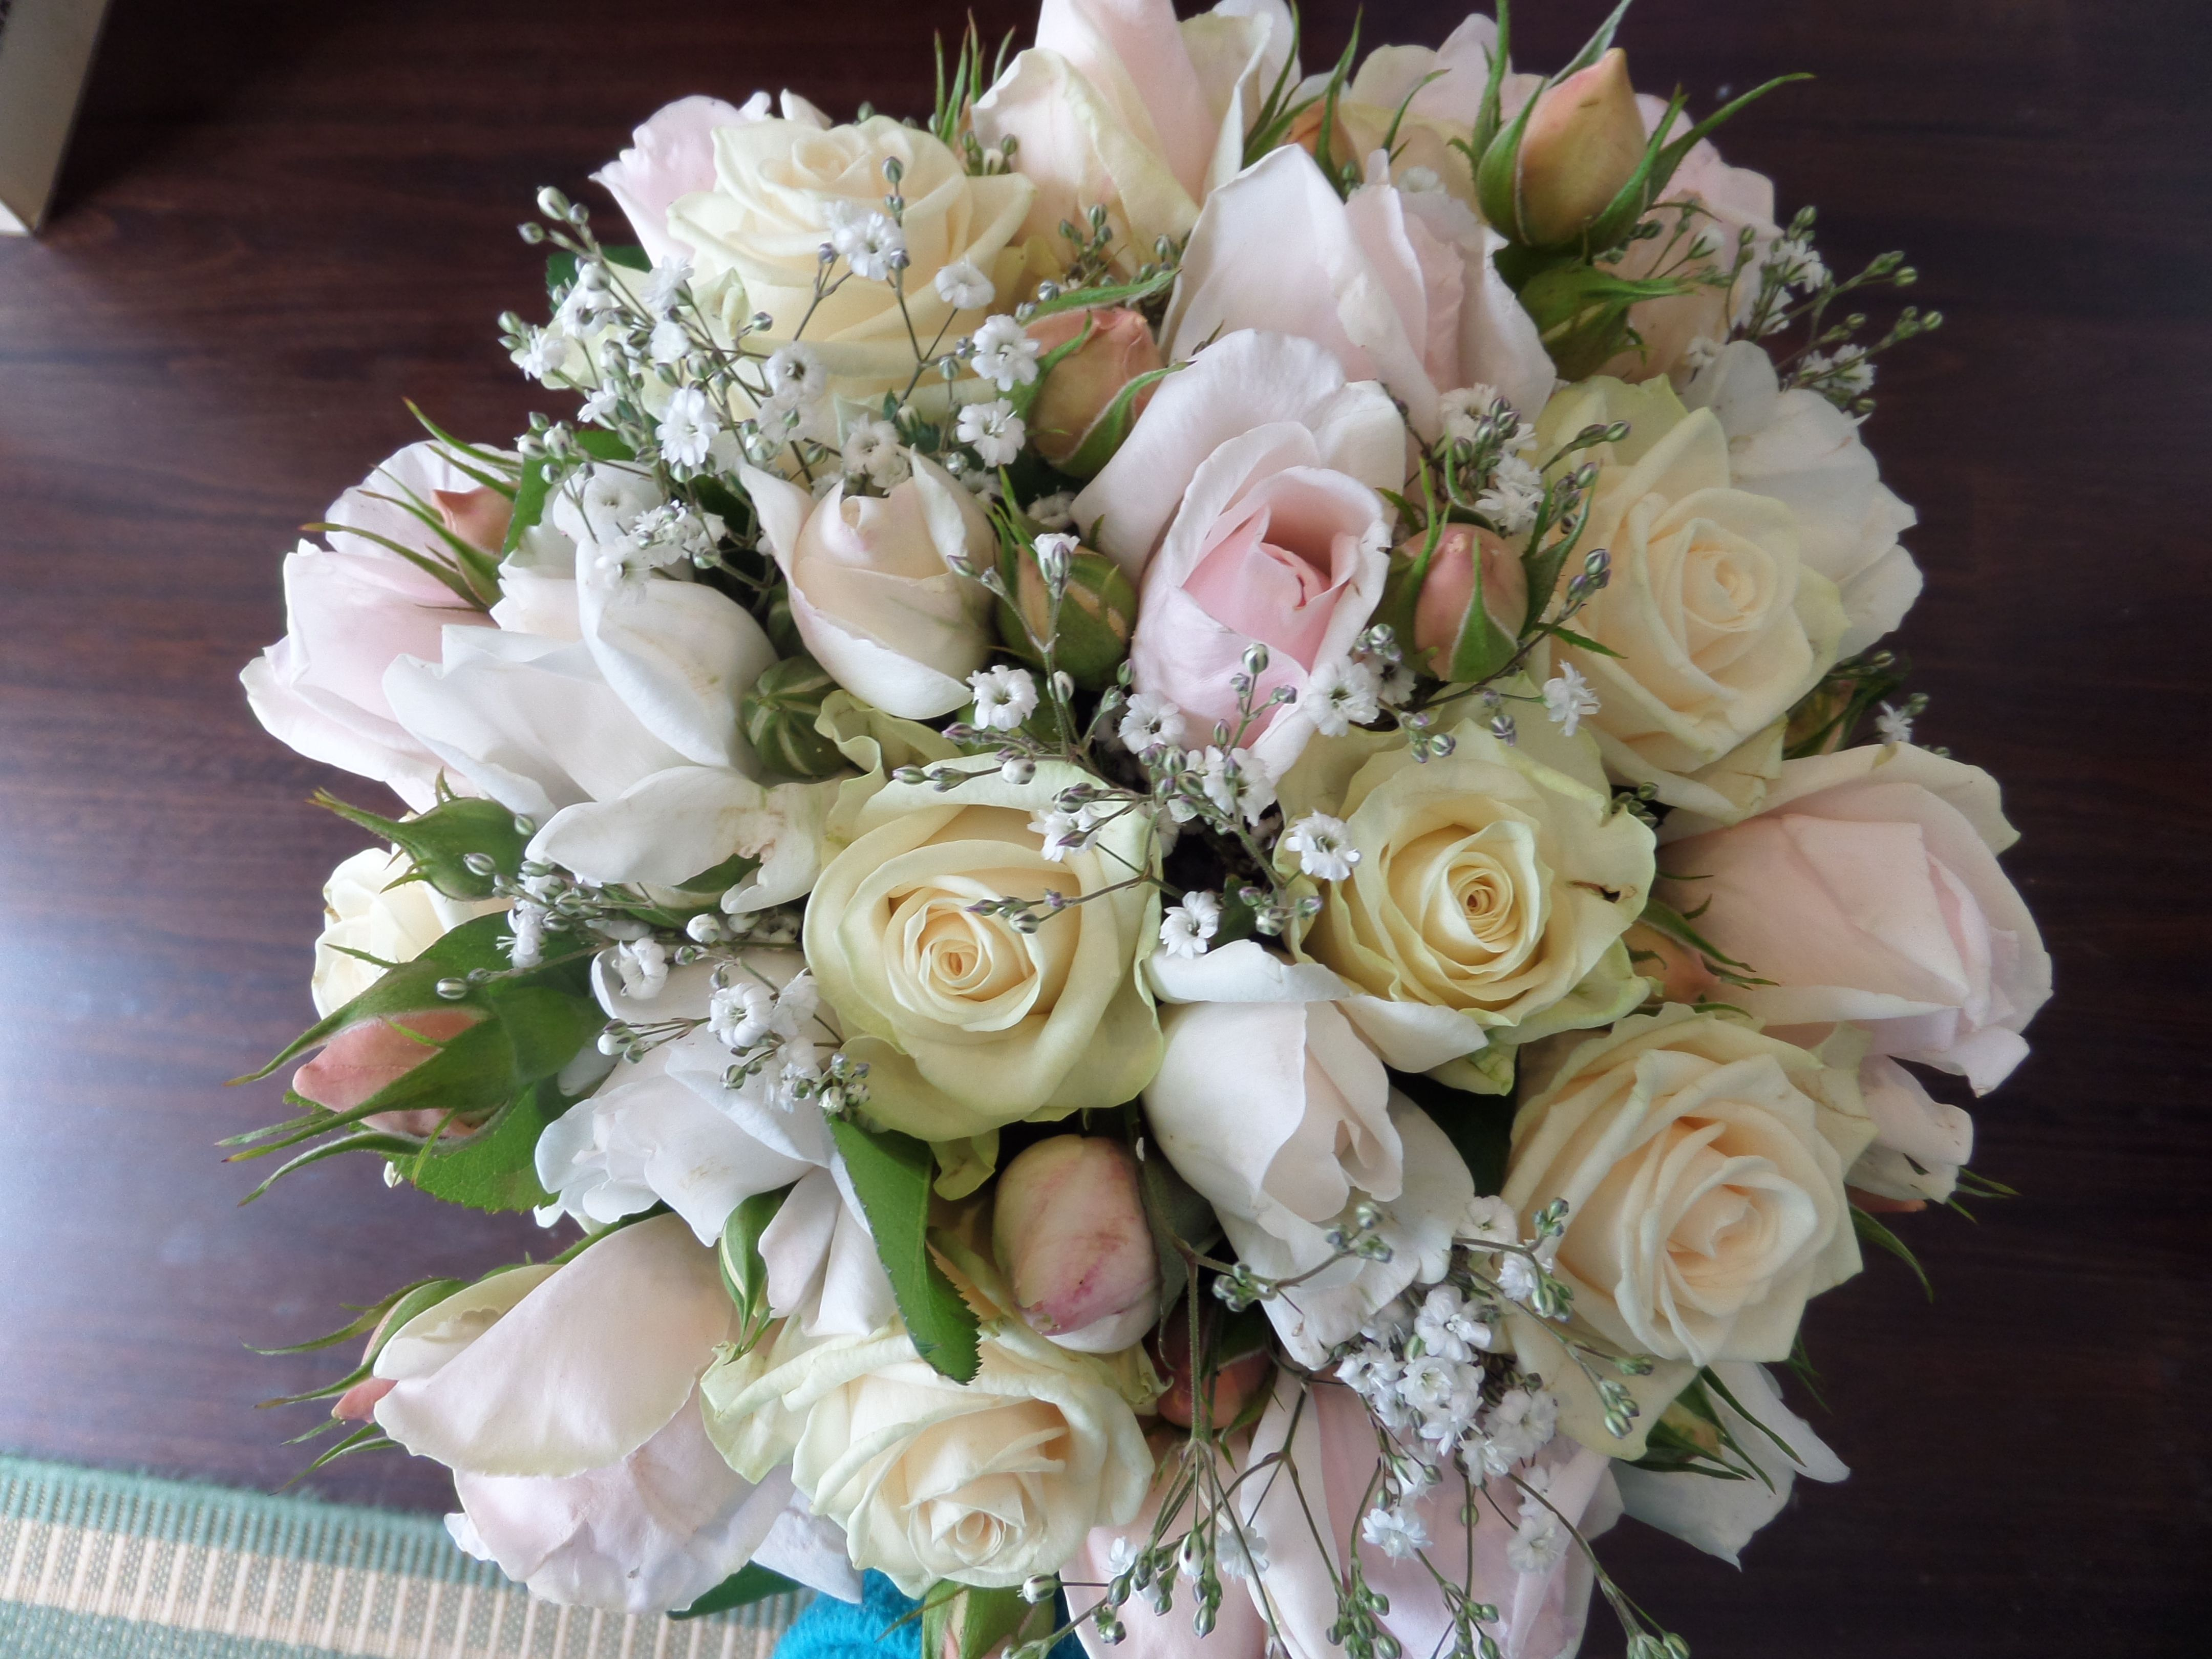 Pretty Bouquet Of Pale Pink And White David Austin Roses With Some